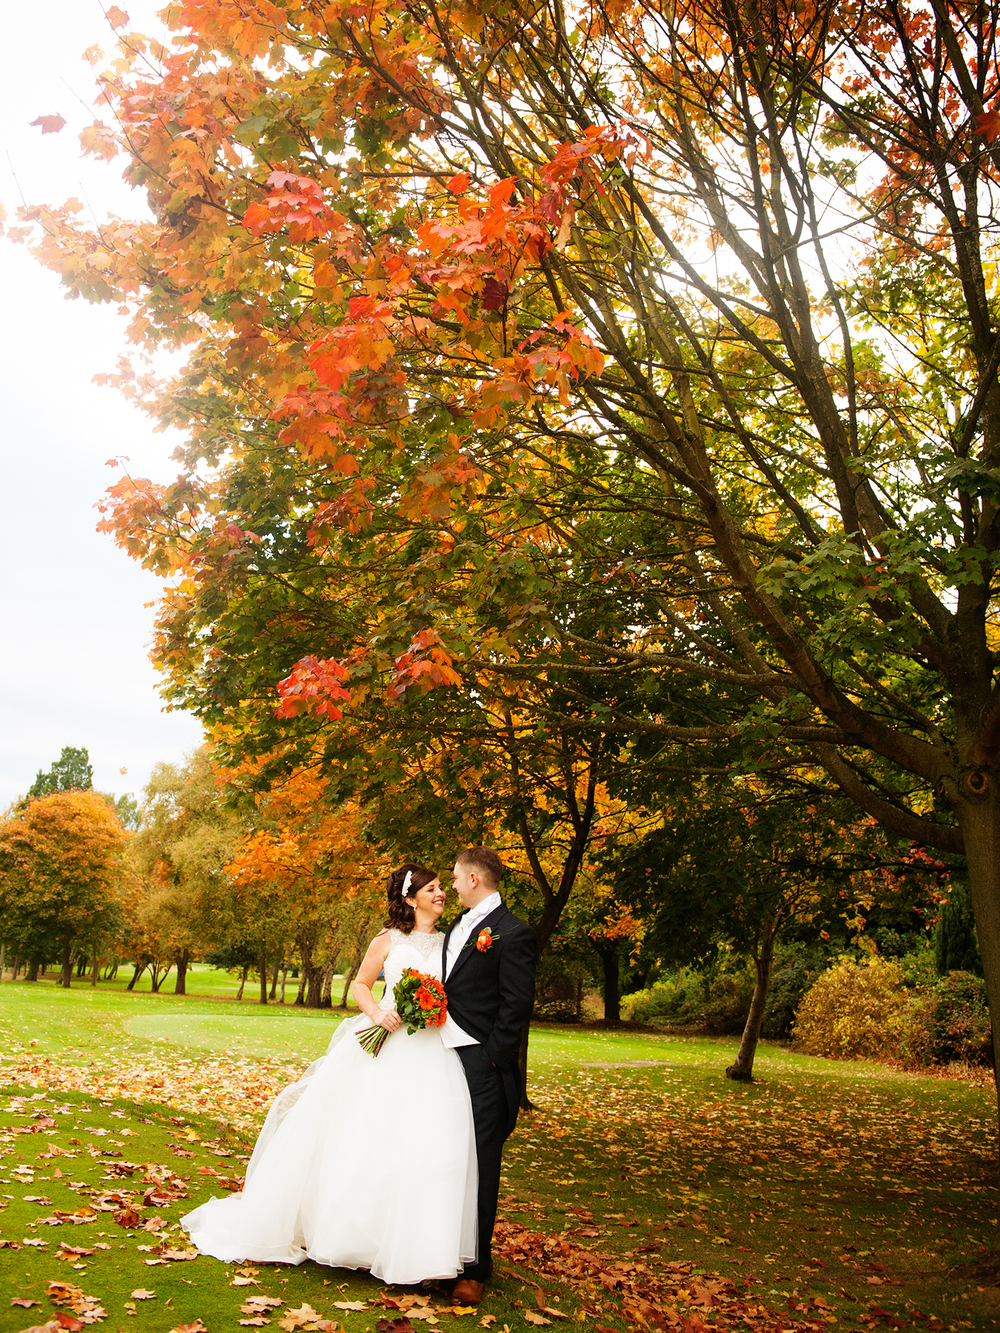 weekday-wedding-photos-jenny-mcavoy-autumn-wedding-autumnal-wedding-swinton-park-golf-club-yorkshire-wedding-ronald-joyce-dress (30)